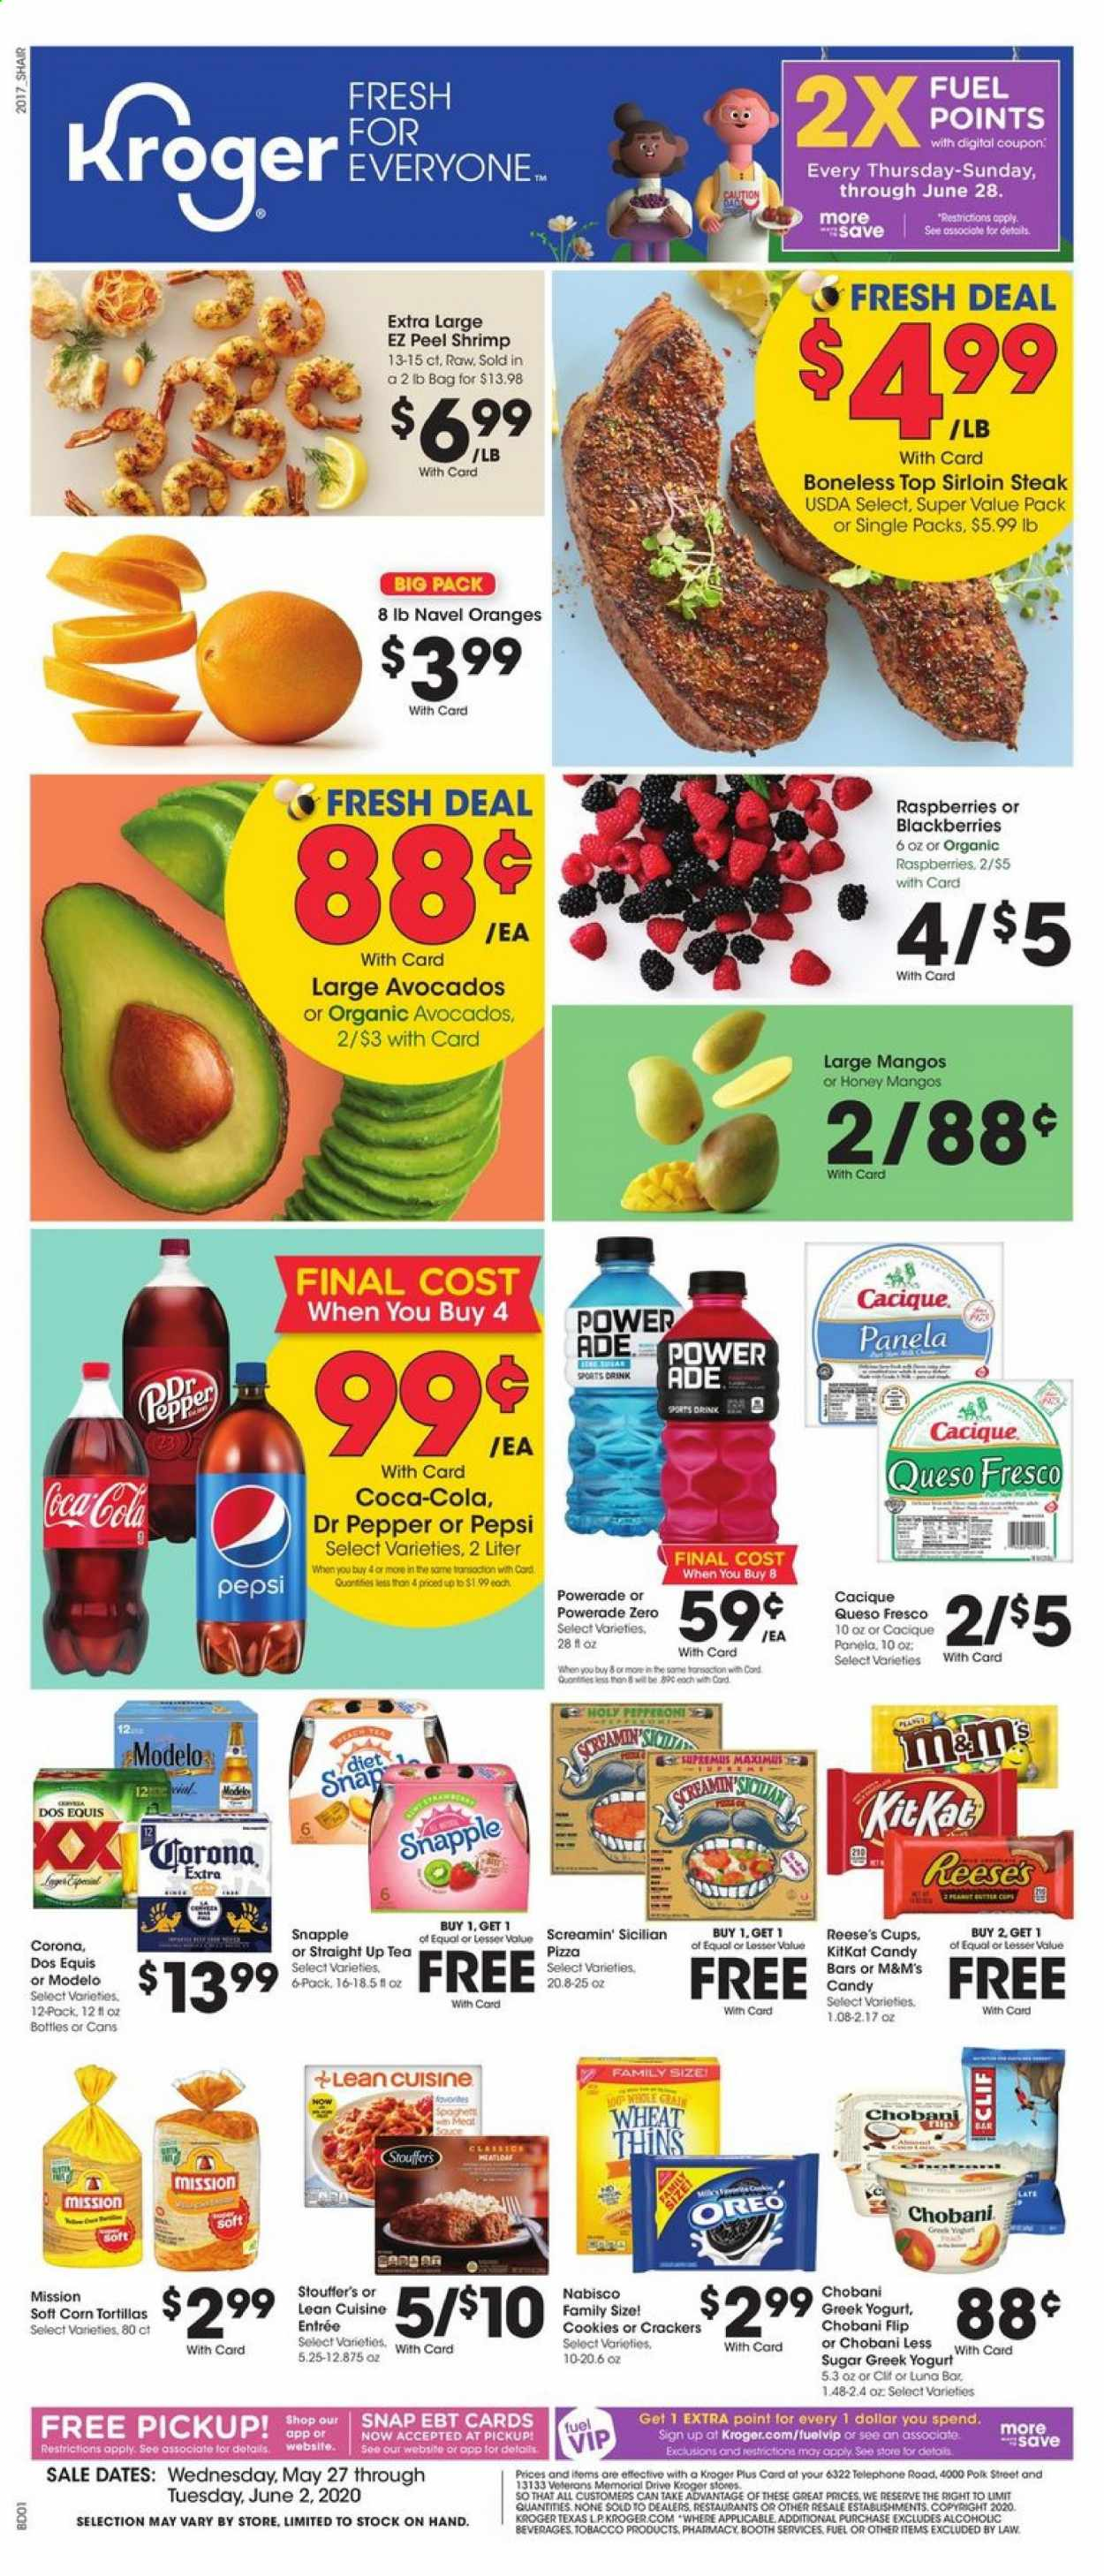 Kroger Flyer - 05.27.2020 - 06.02.2020 - Sales products - Corona, Dos Equis, corn, avocado, blackberries, mango, raspberries, orange, tortillas, shrimps, pizza, pepperoni, queso fresco, greek yoghurt, Oreo, cookies, candy, KitKat, M&M's, crackers, corn tortillas, pepper, honey, Coca-Cola, Powerade, Pepsi, Dr. Pepper, tea, steak, fuel. Page 1.